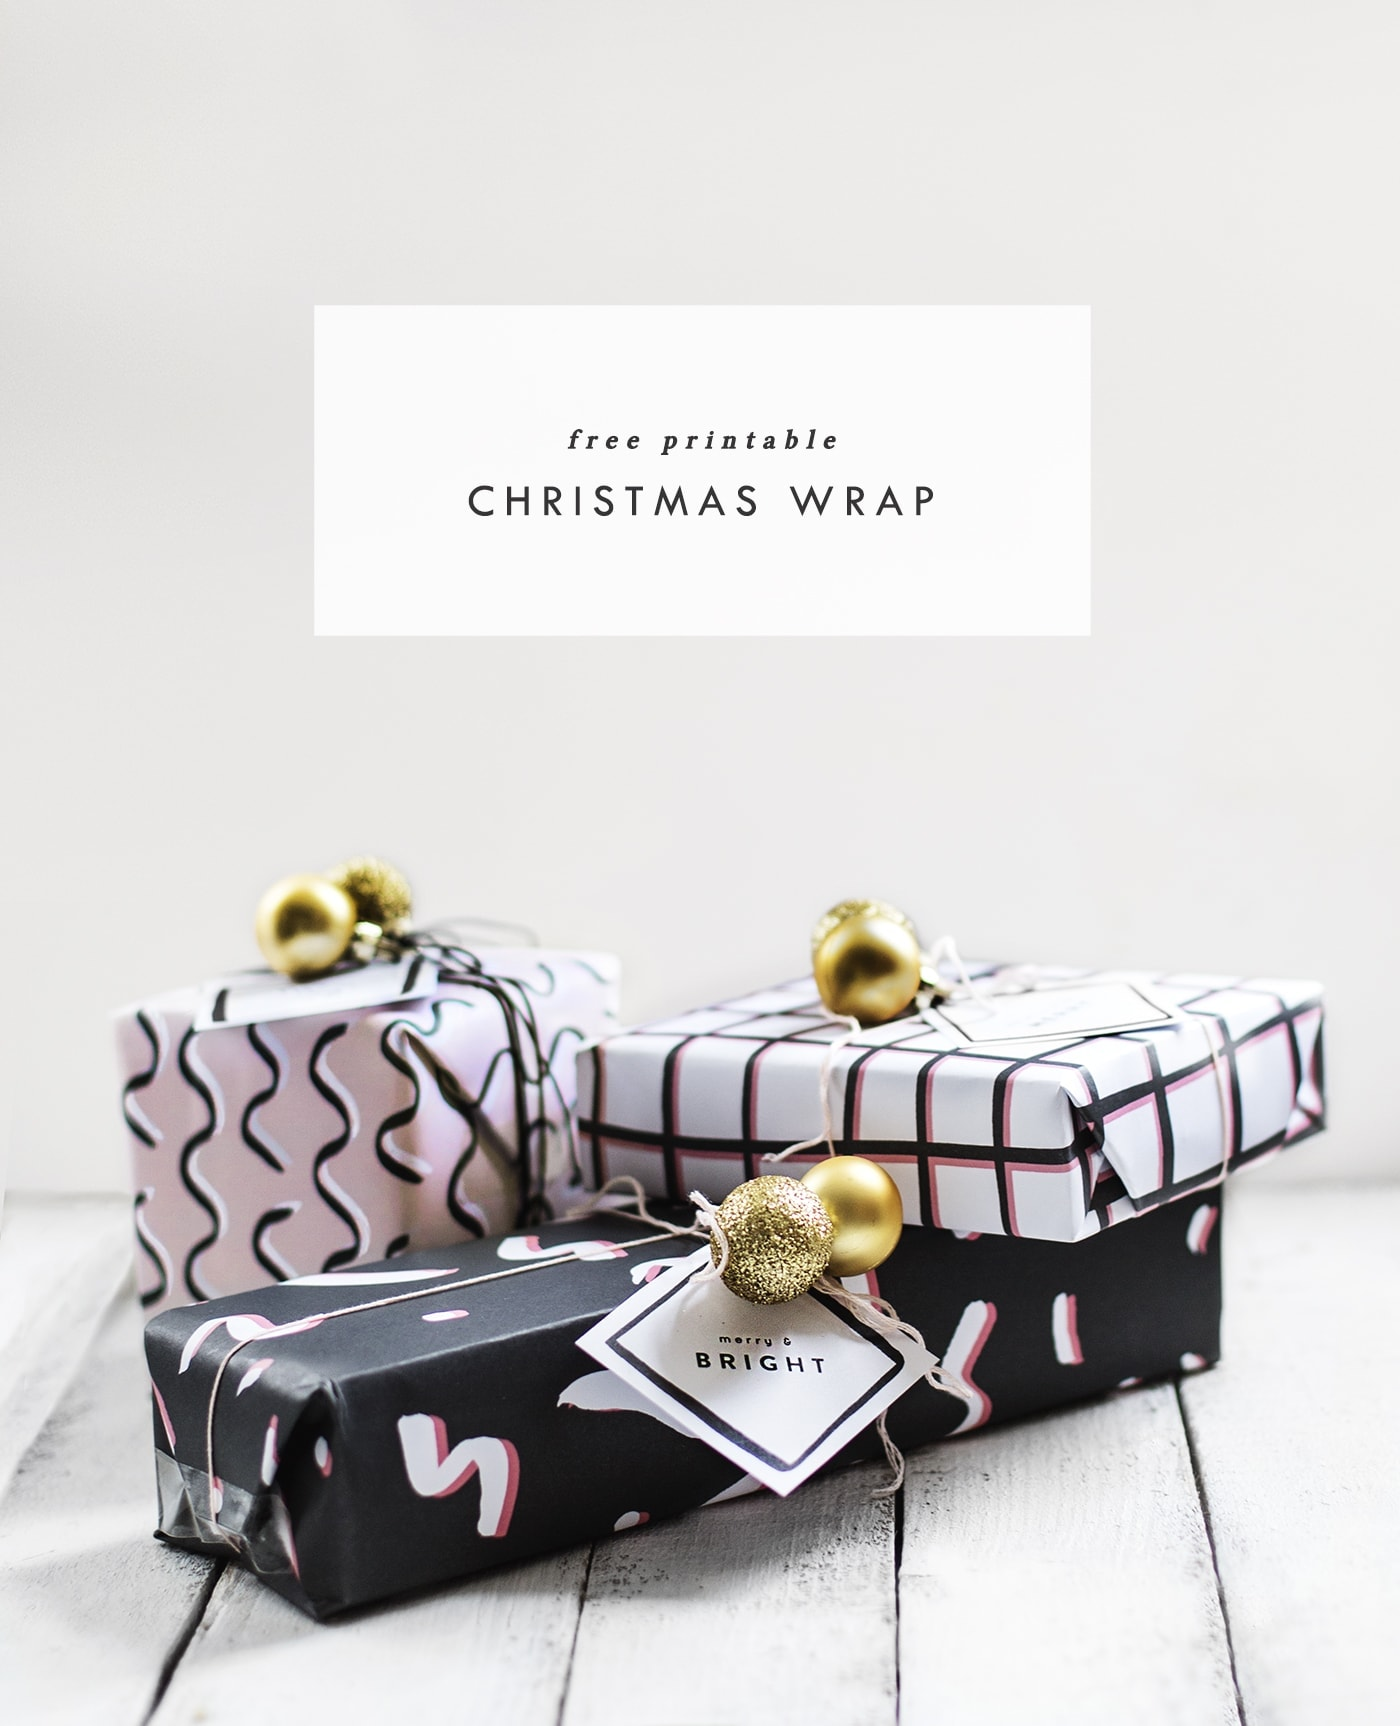 free printable christmas wrap and tags | diy tutorial